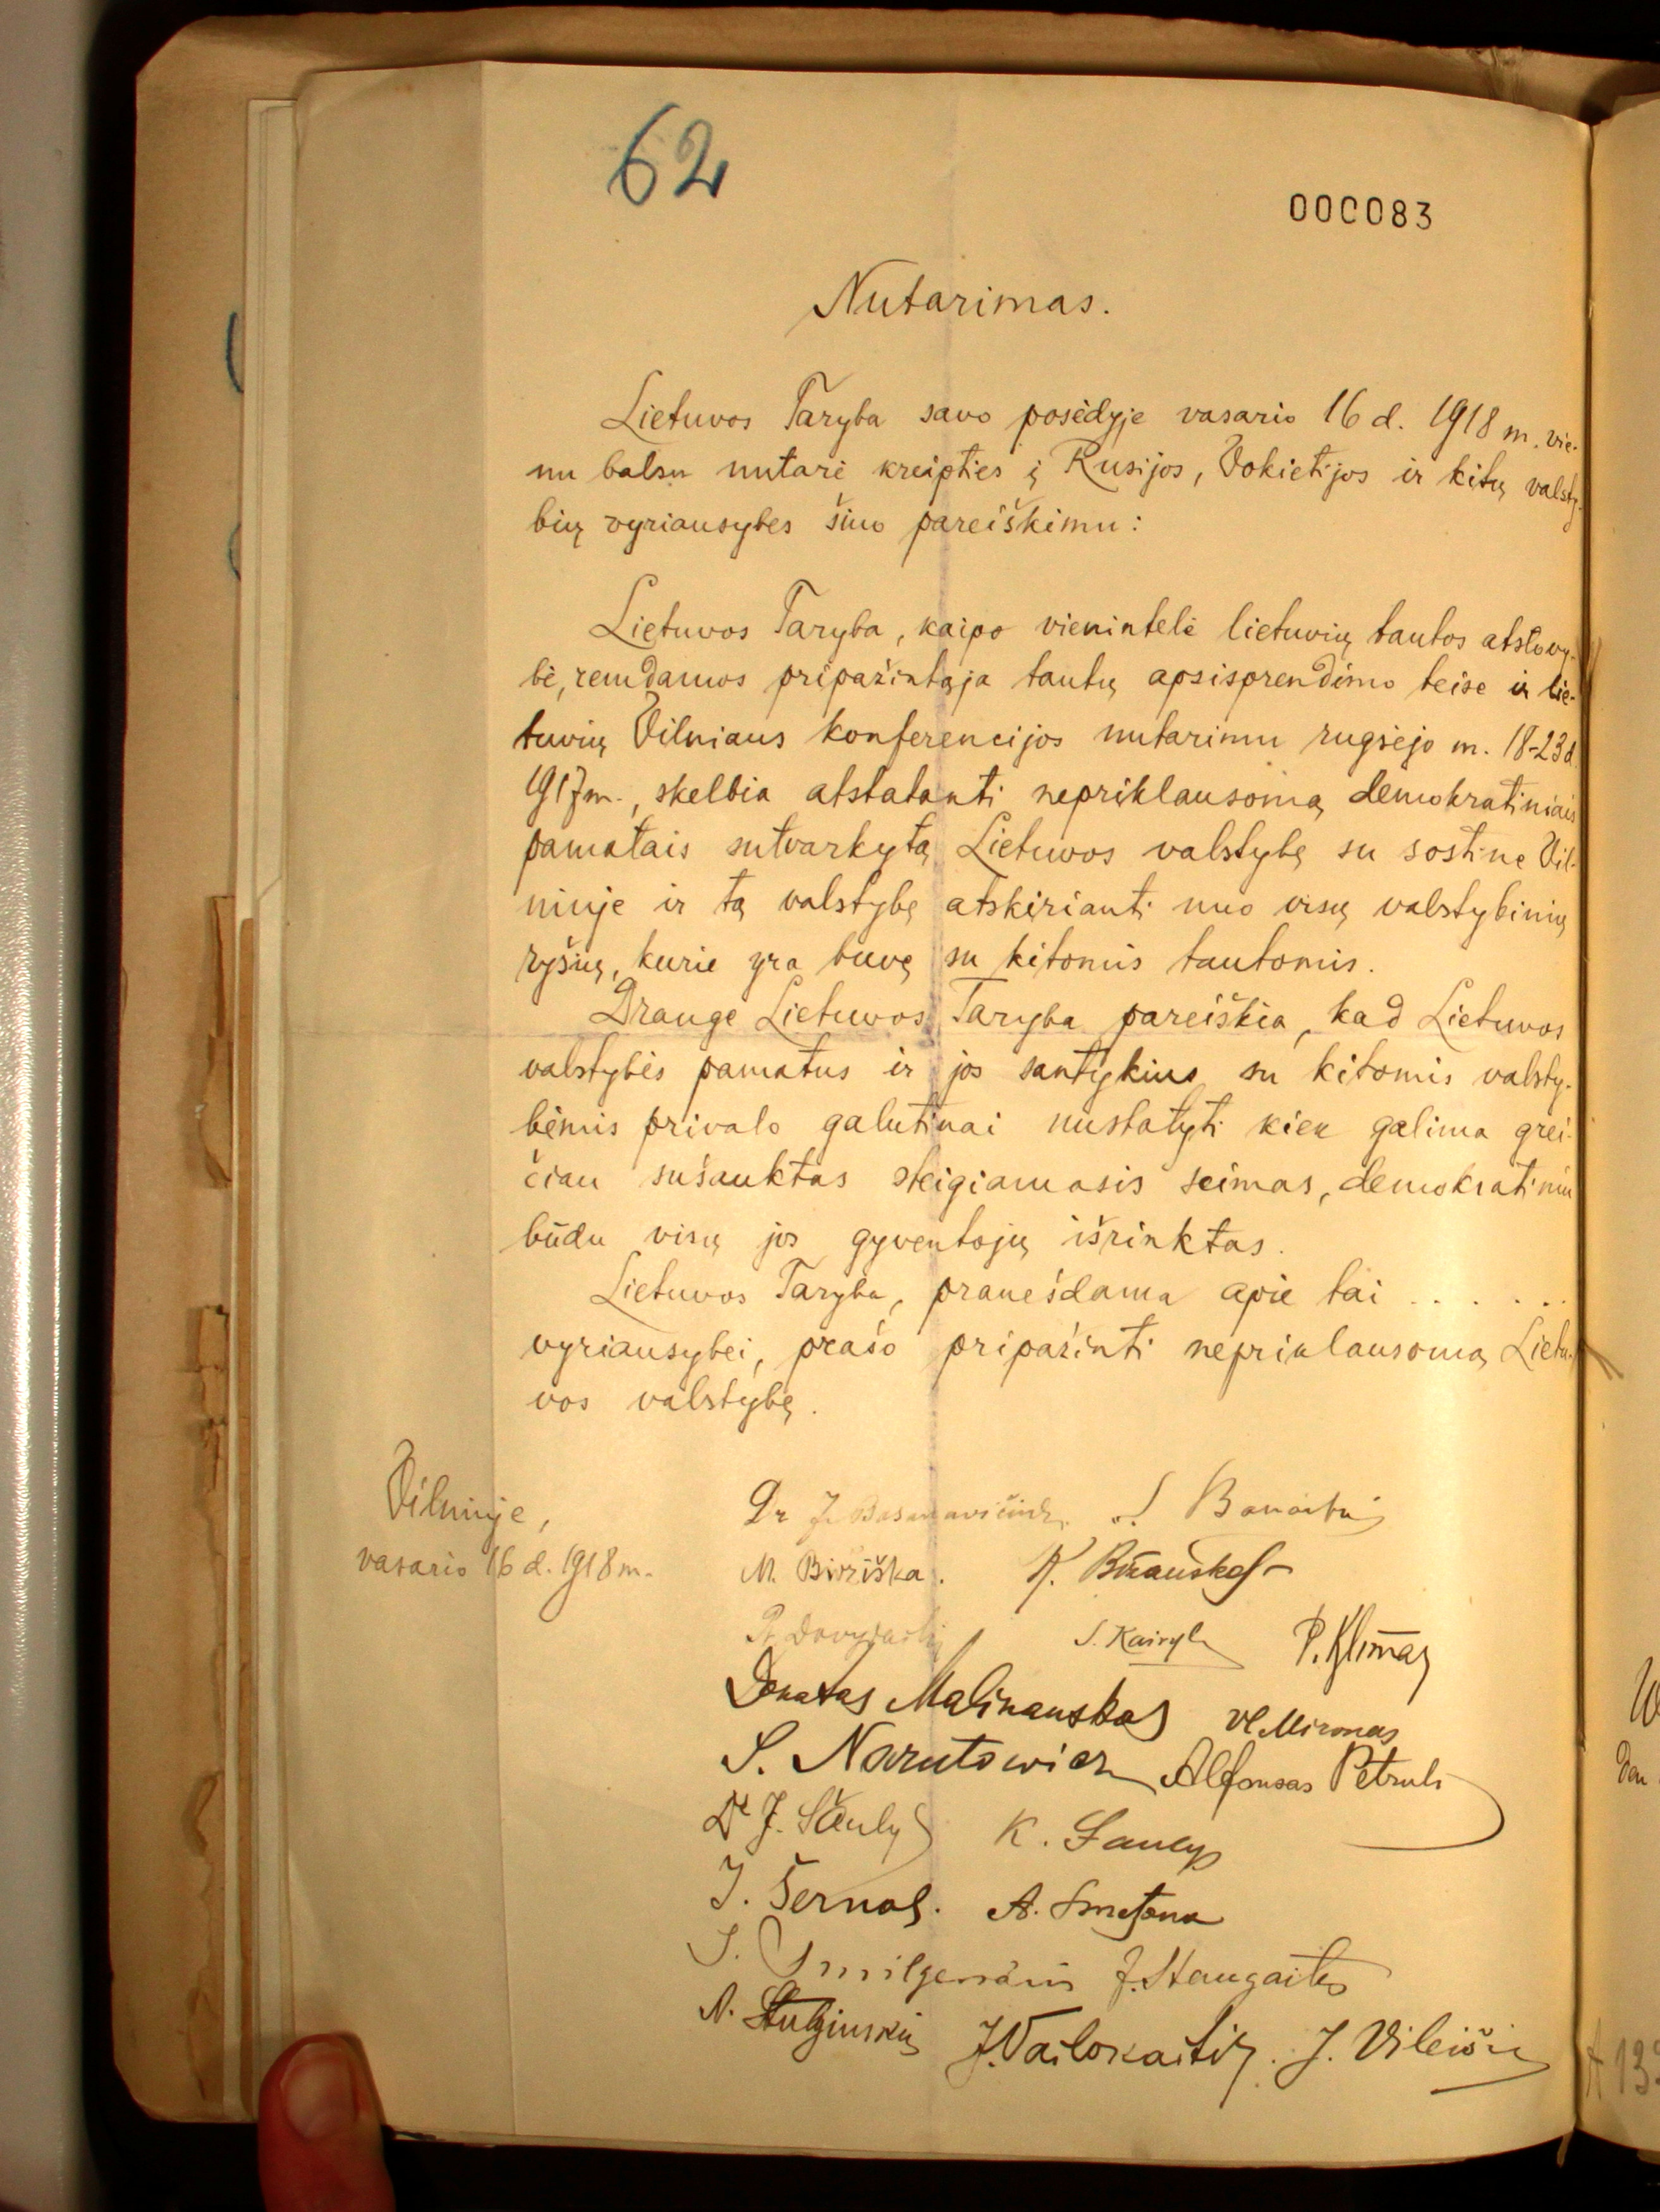 Lithuania's Independence declaration from February 16, 1918 released by Lithuanian Embassy in Berlin, Germany on March 30, 2017. (Lithuanian Embassy in Germany/Handout via REUTERS)